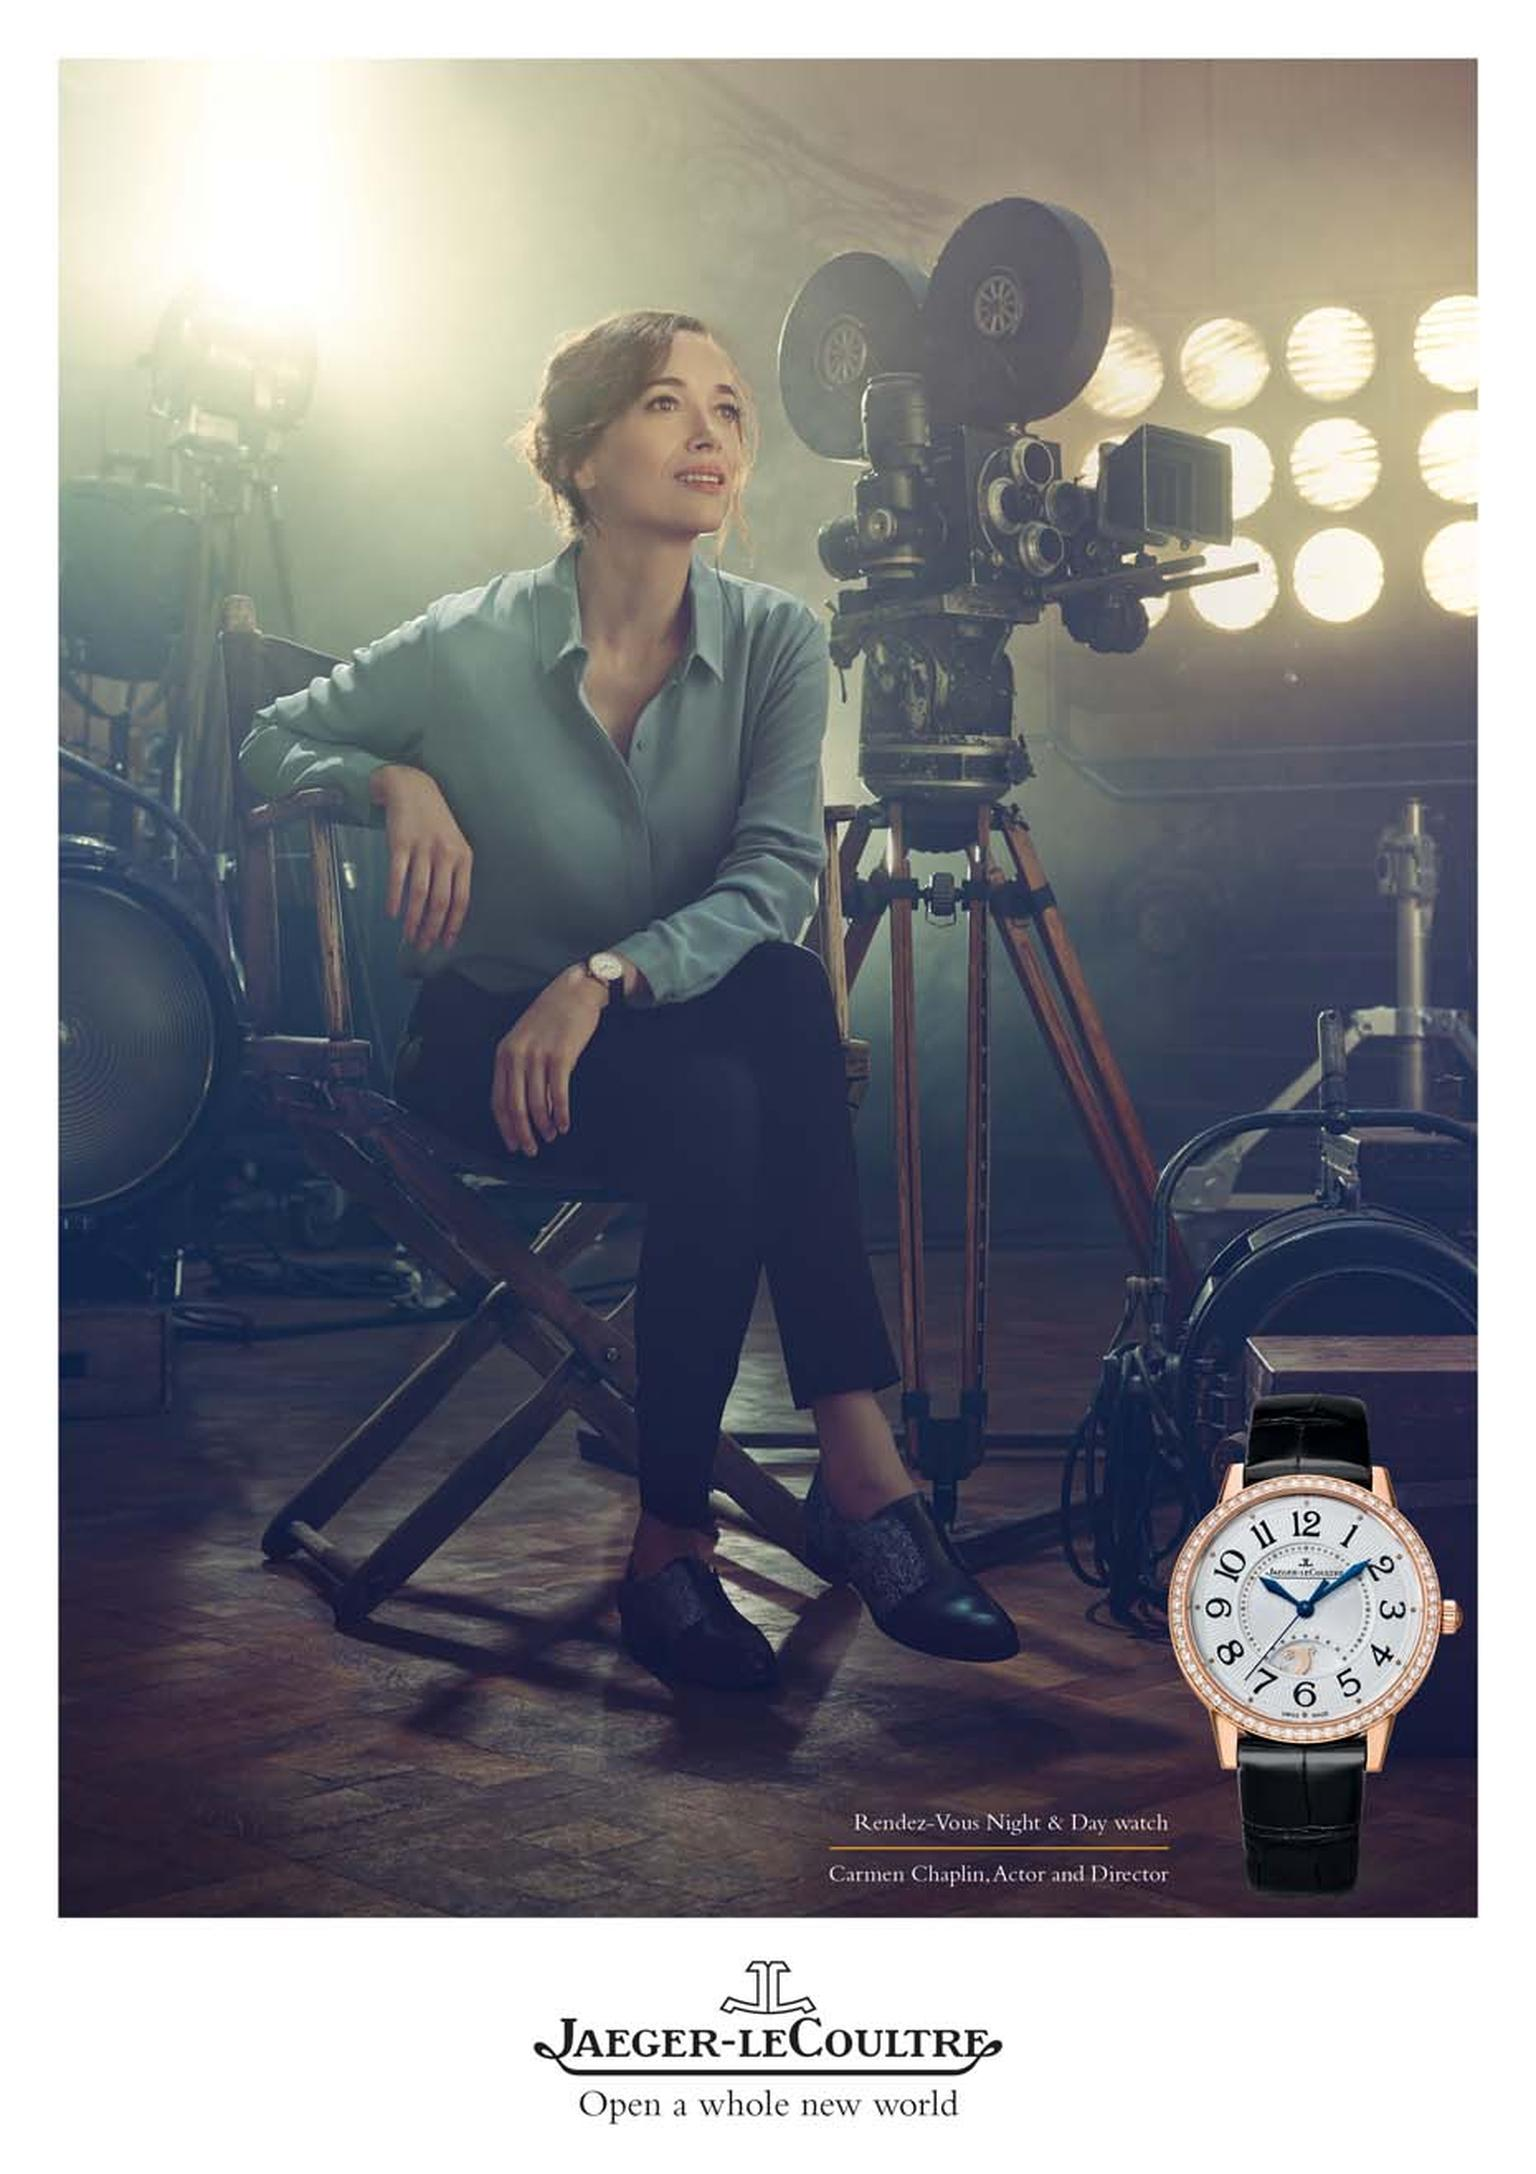 Carmen Chaplin, actress, screenwriter and producer, came to Jaeger-LeCoultre with her grandfather's Memovox line and wears the Rendez-Vous watch in the new advertising campaign.